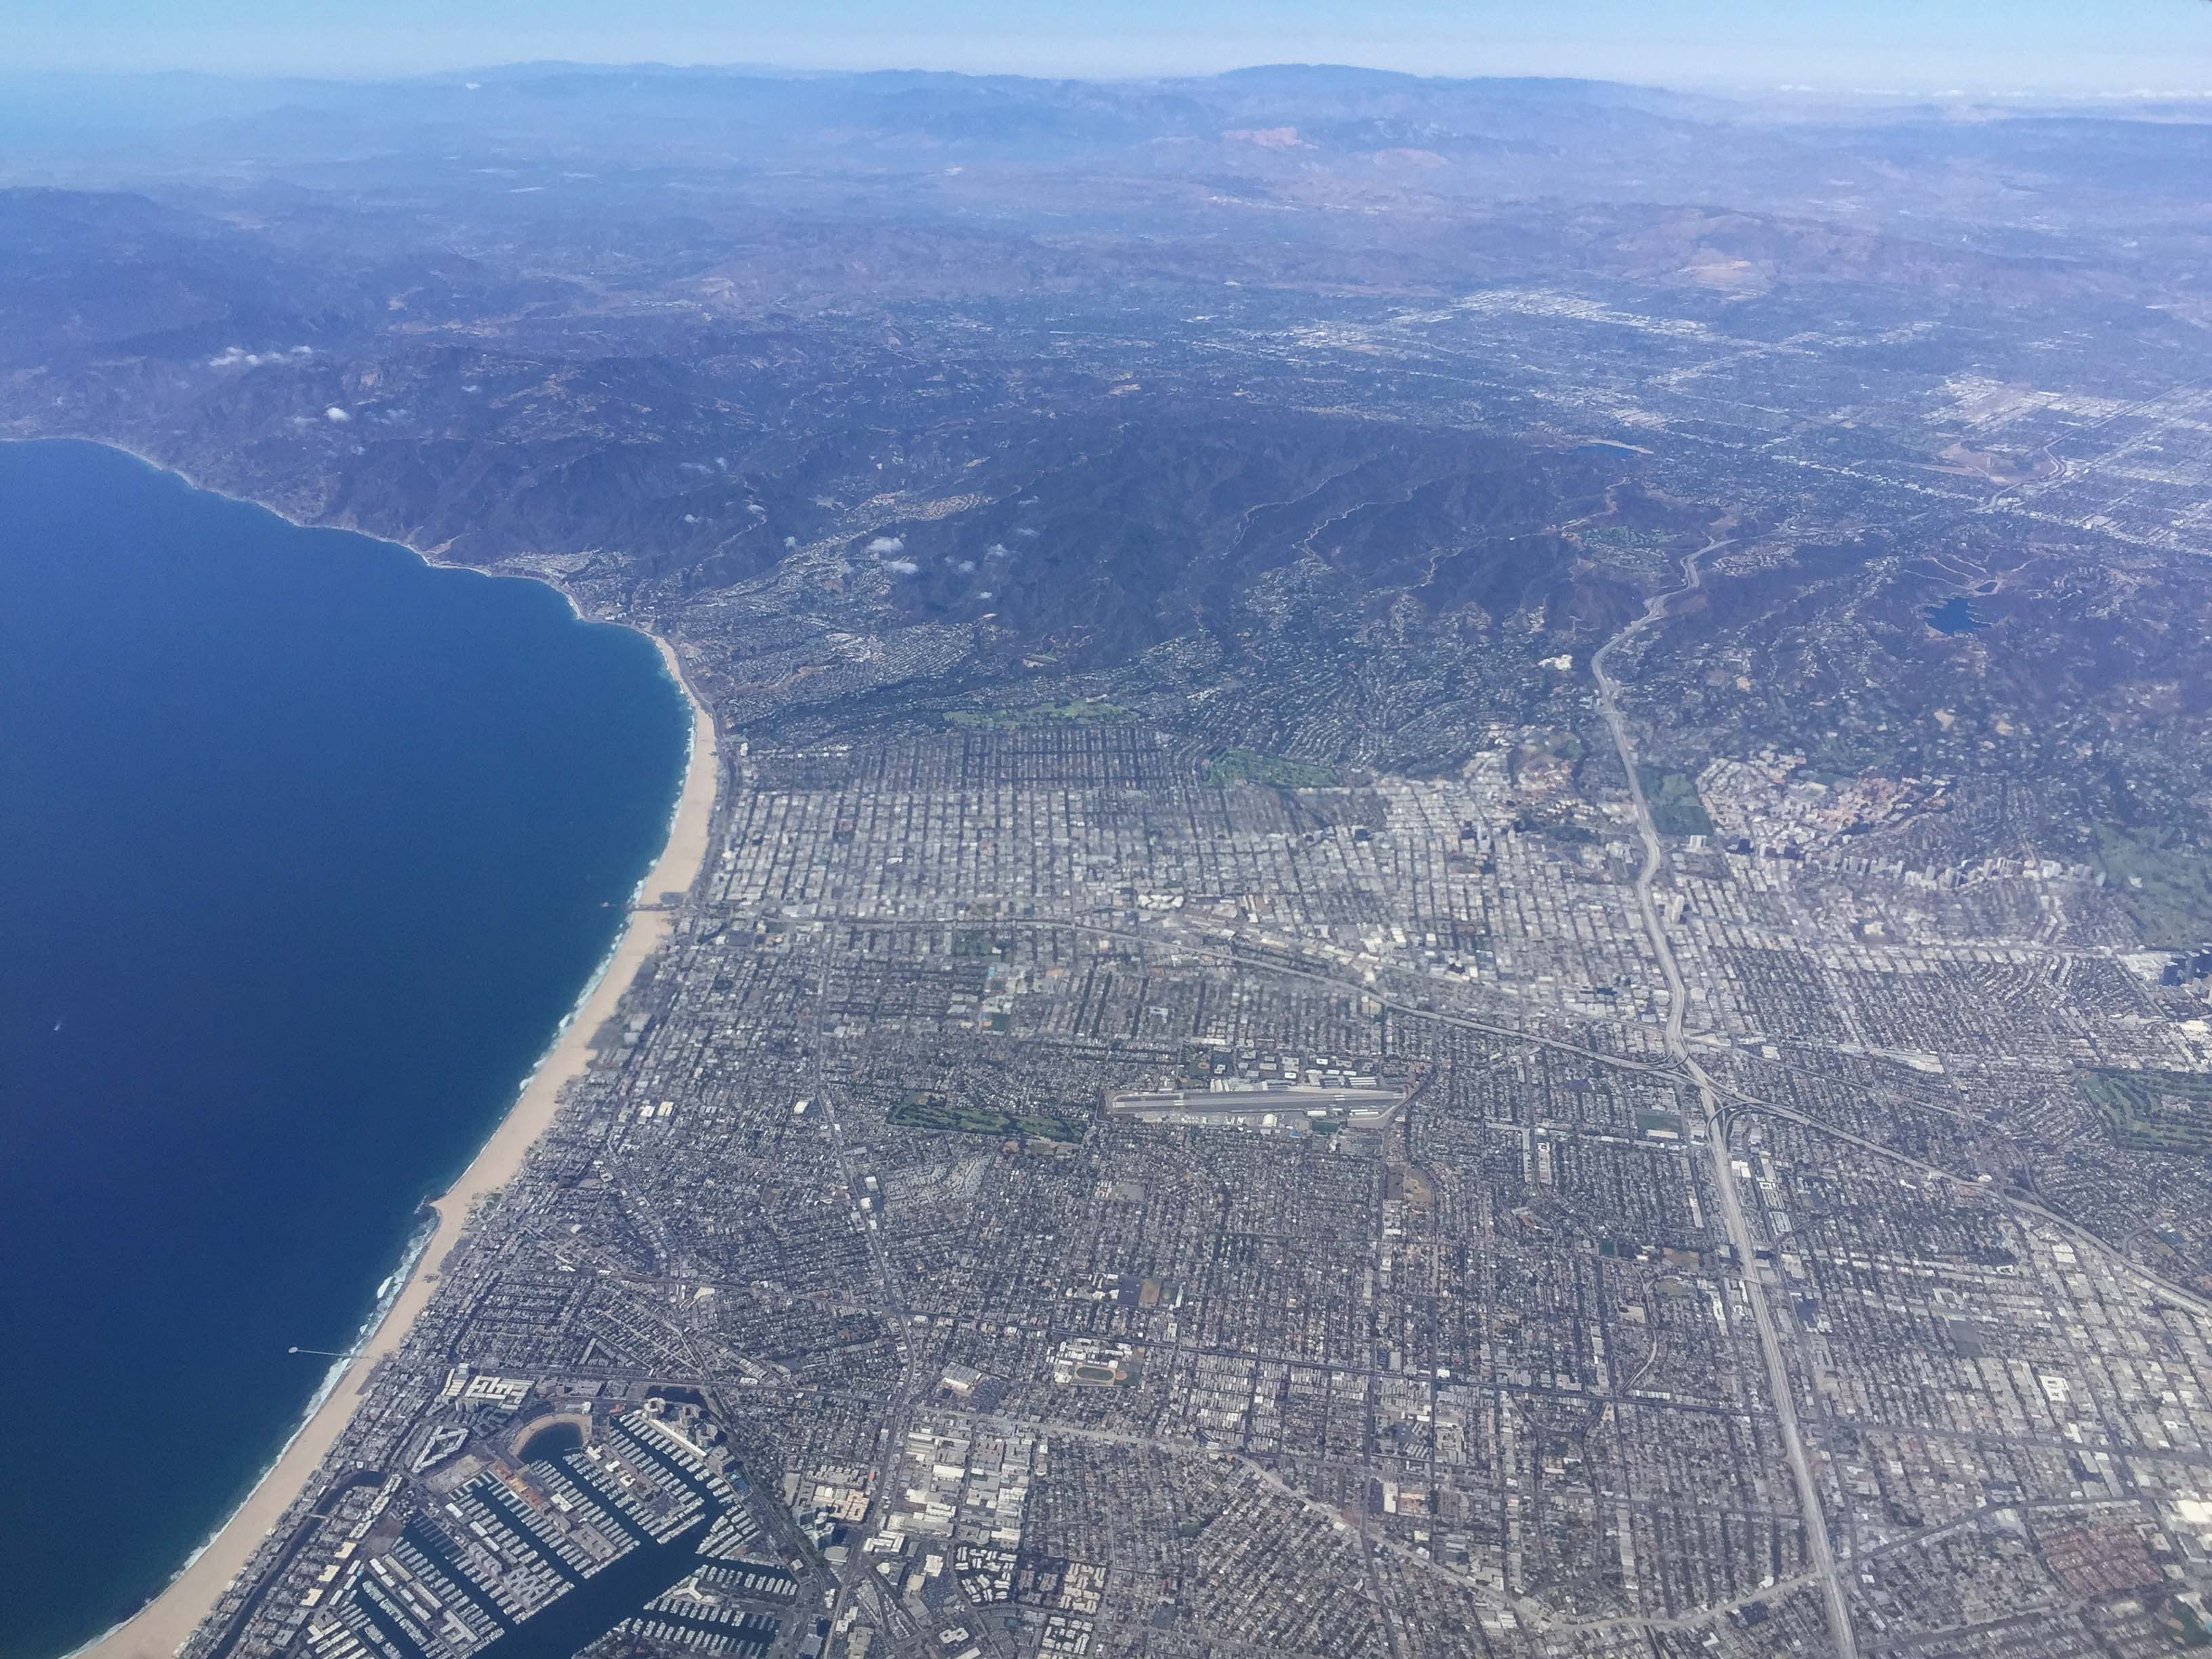 Marina del Rey is at bottom and that's the 10 freeway about center frame. If you look real close, you can see the Expo Line slicing across Cheviot Hills on the right side of frame. Photo by Steve Hymon.